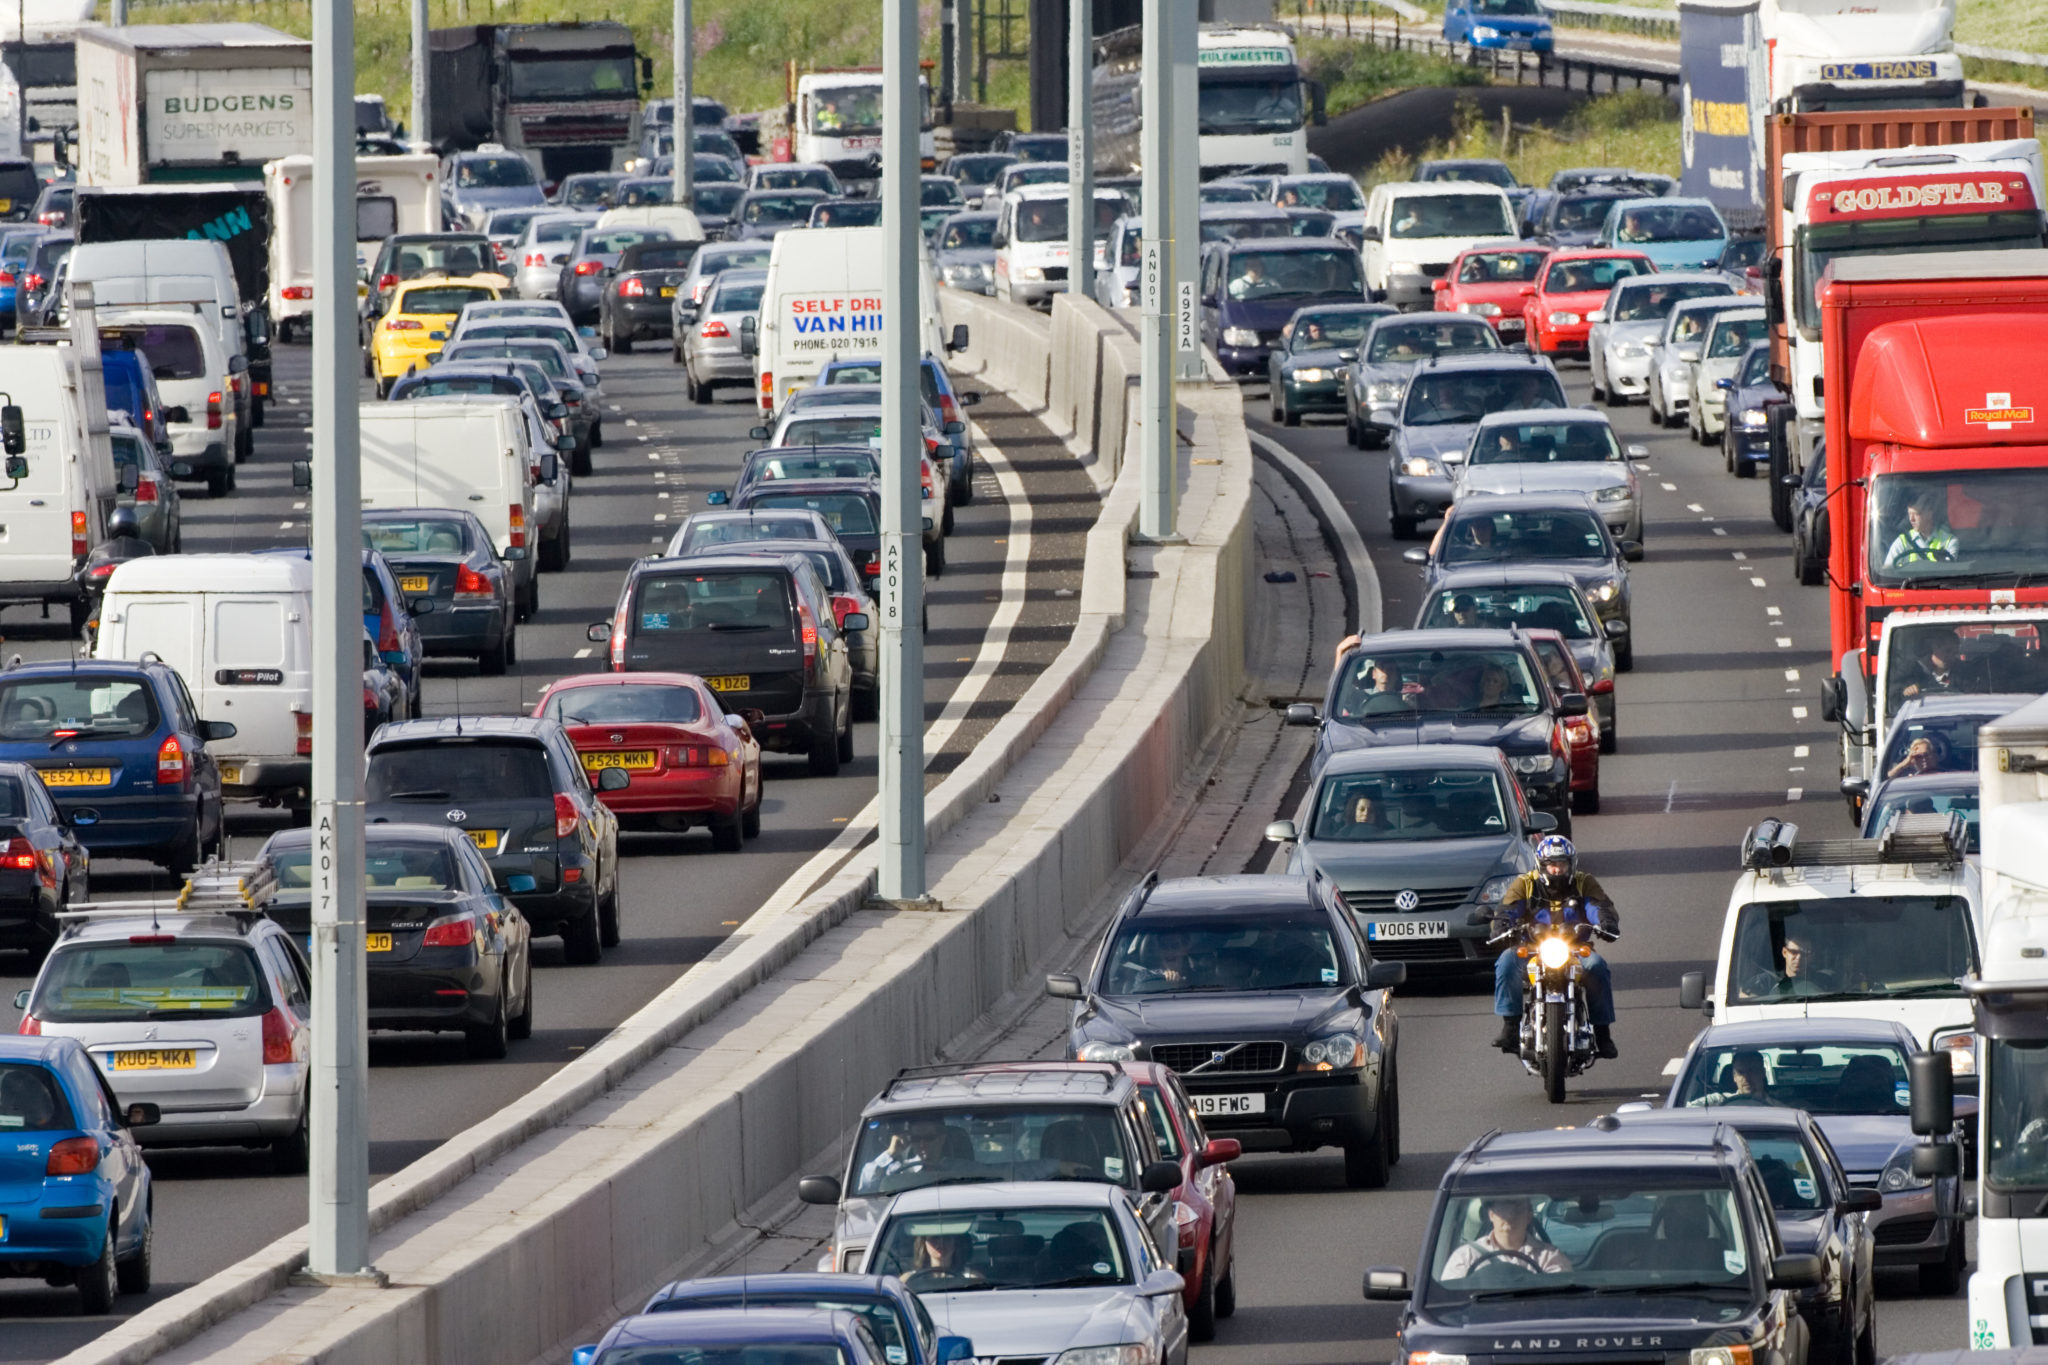 More motorcycles would reduce congestion for all